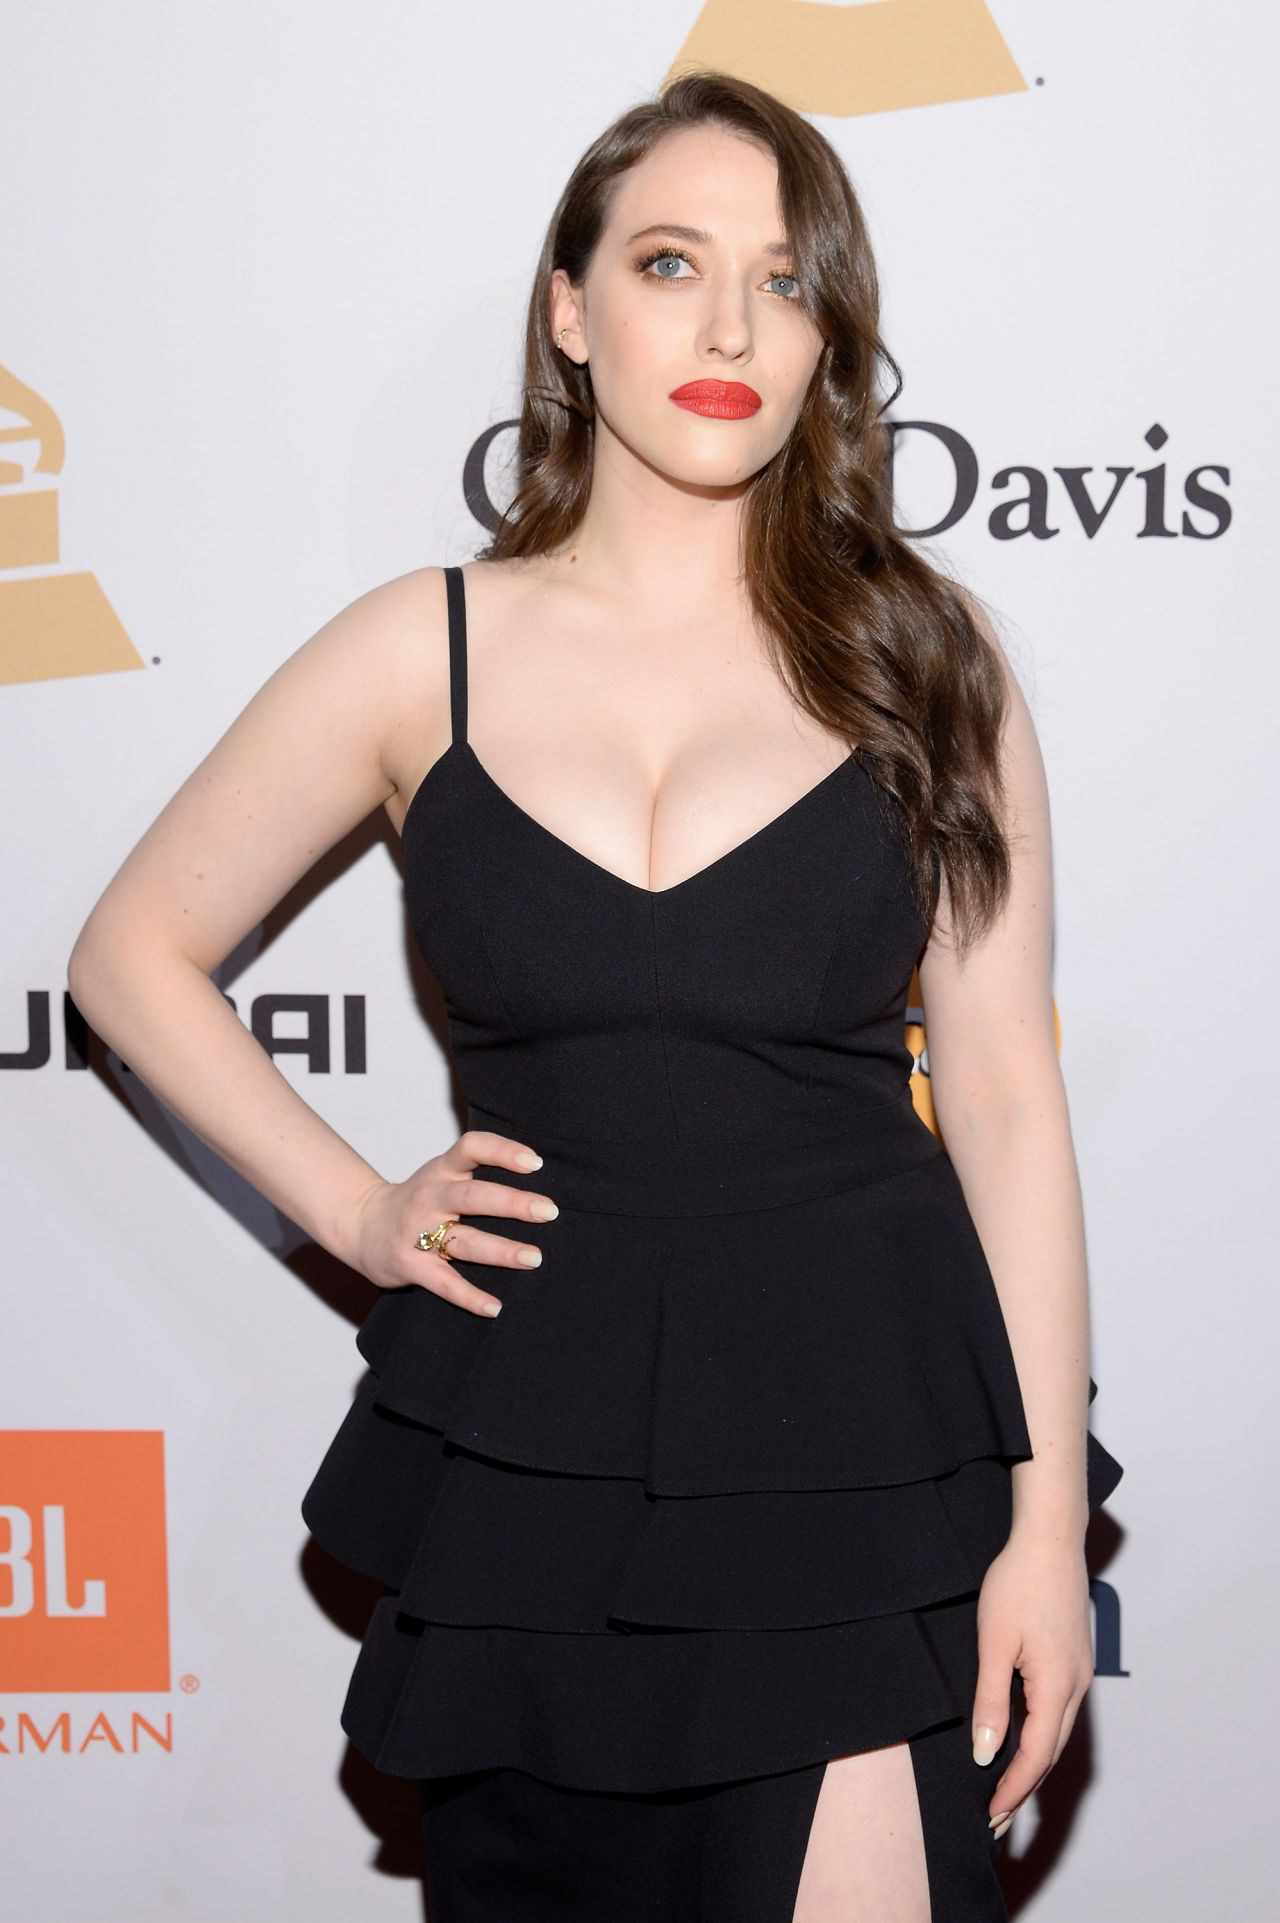 Kat Dennings Latest Photos Celebmafia